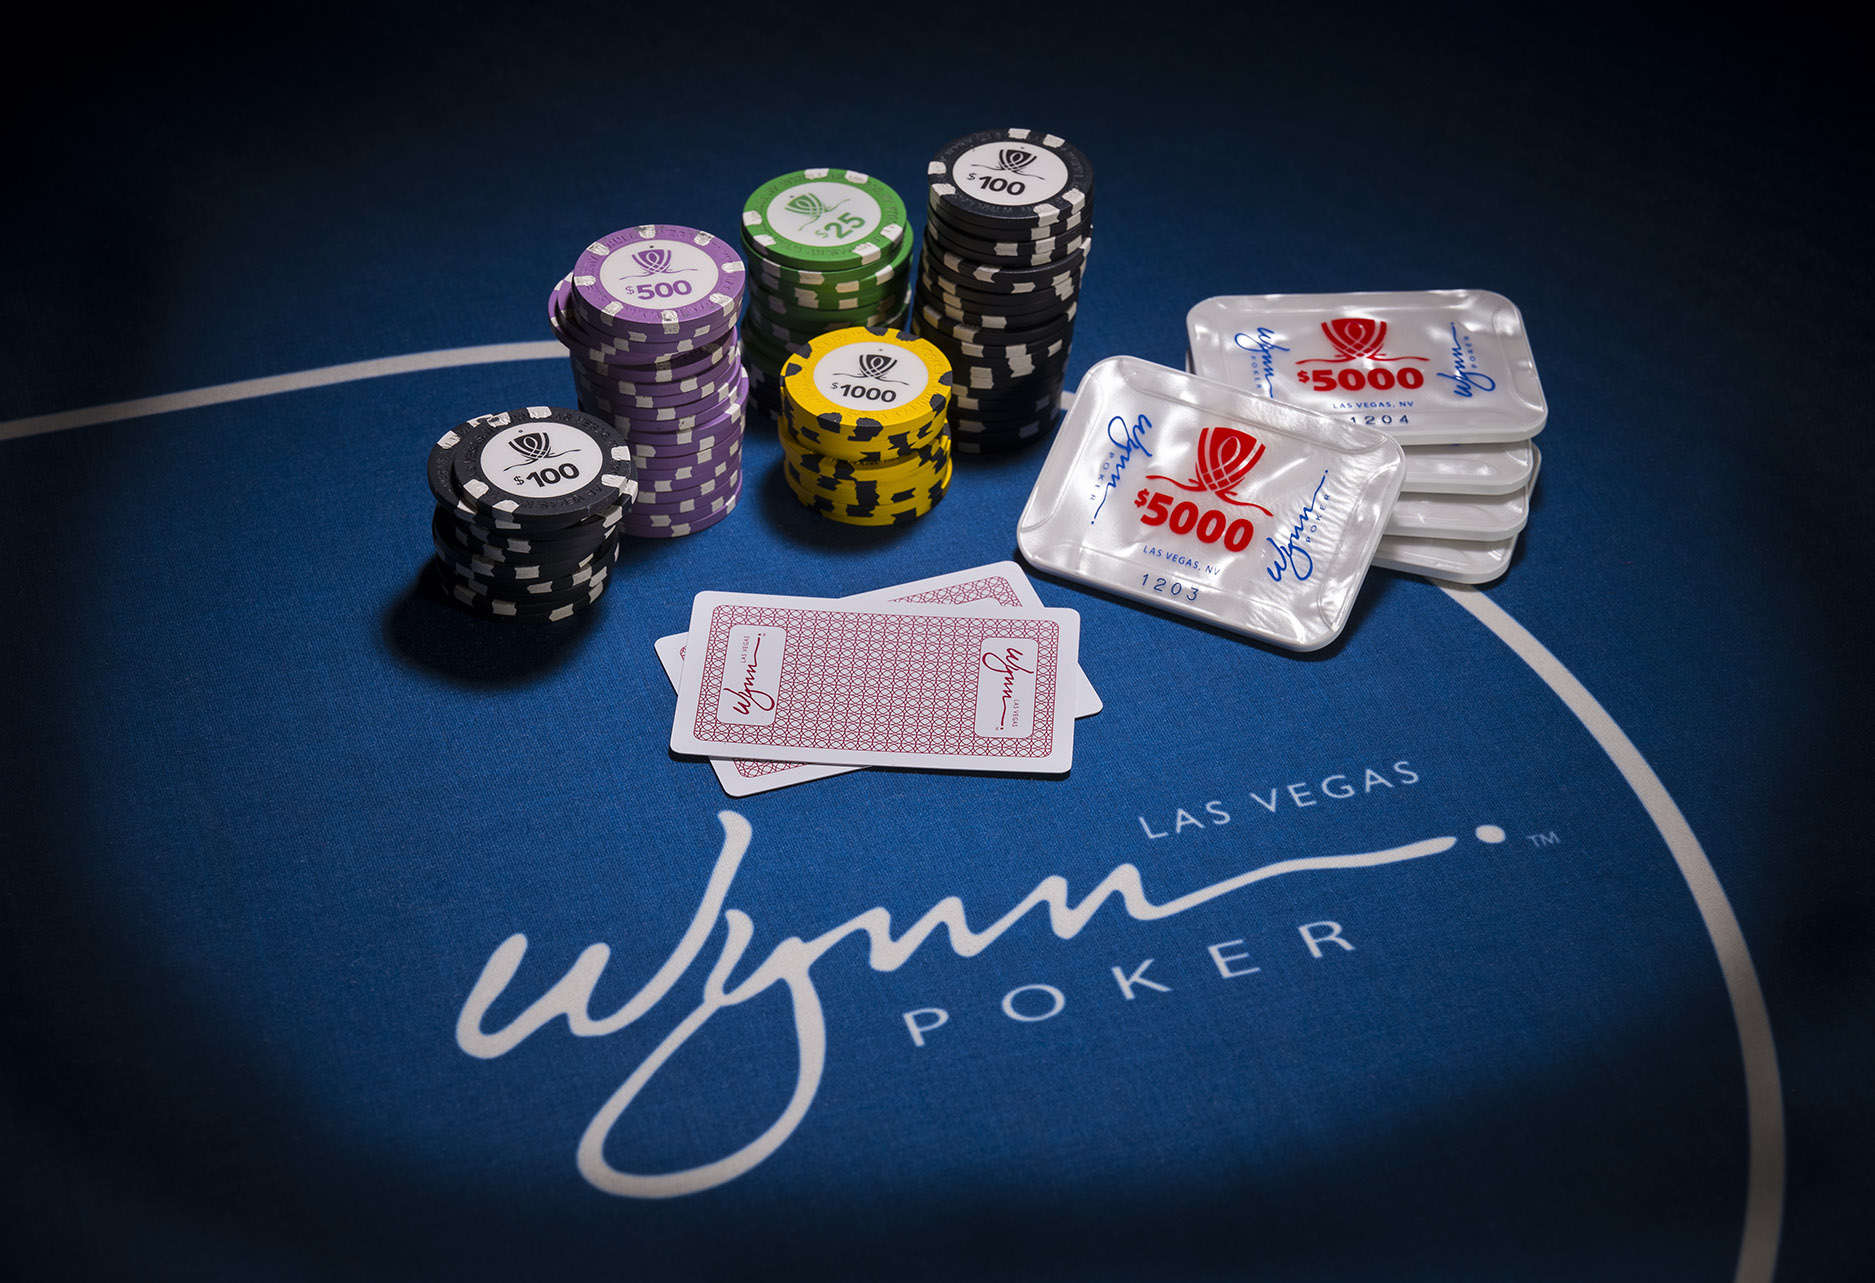 jeff-green-poker-chips-cards-wynn